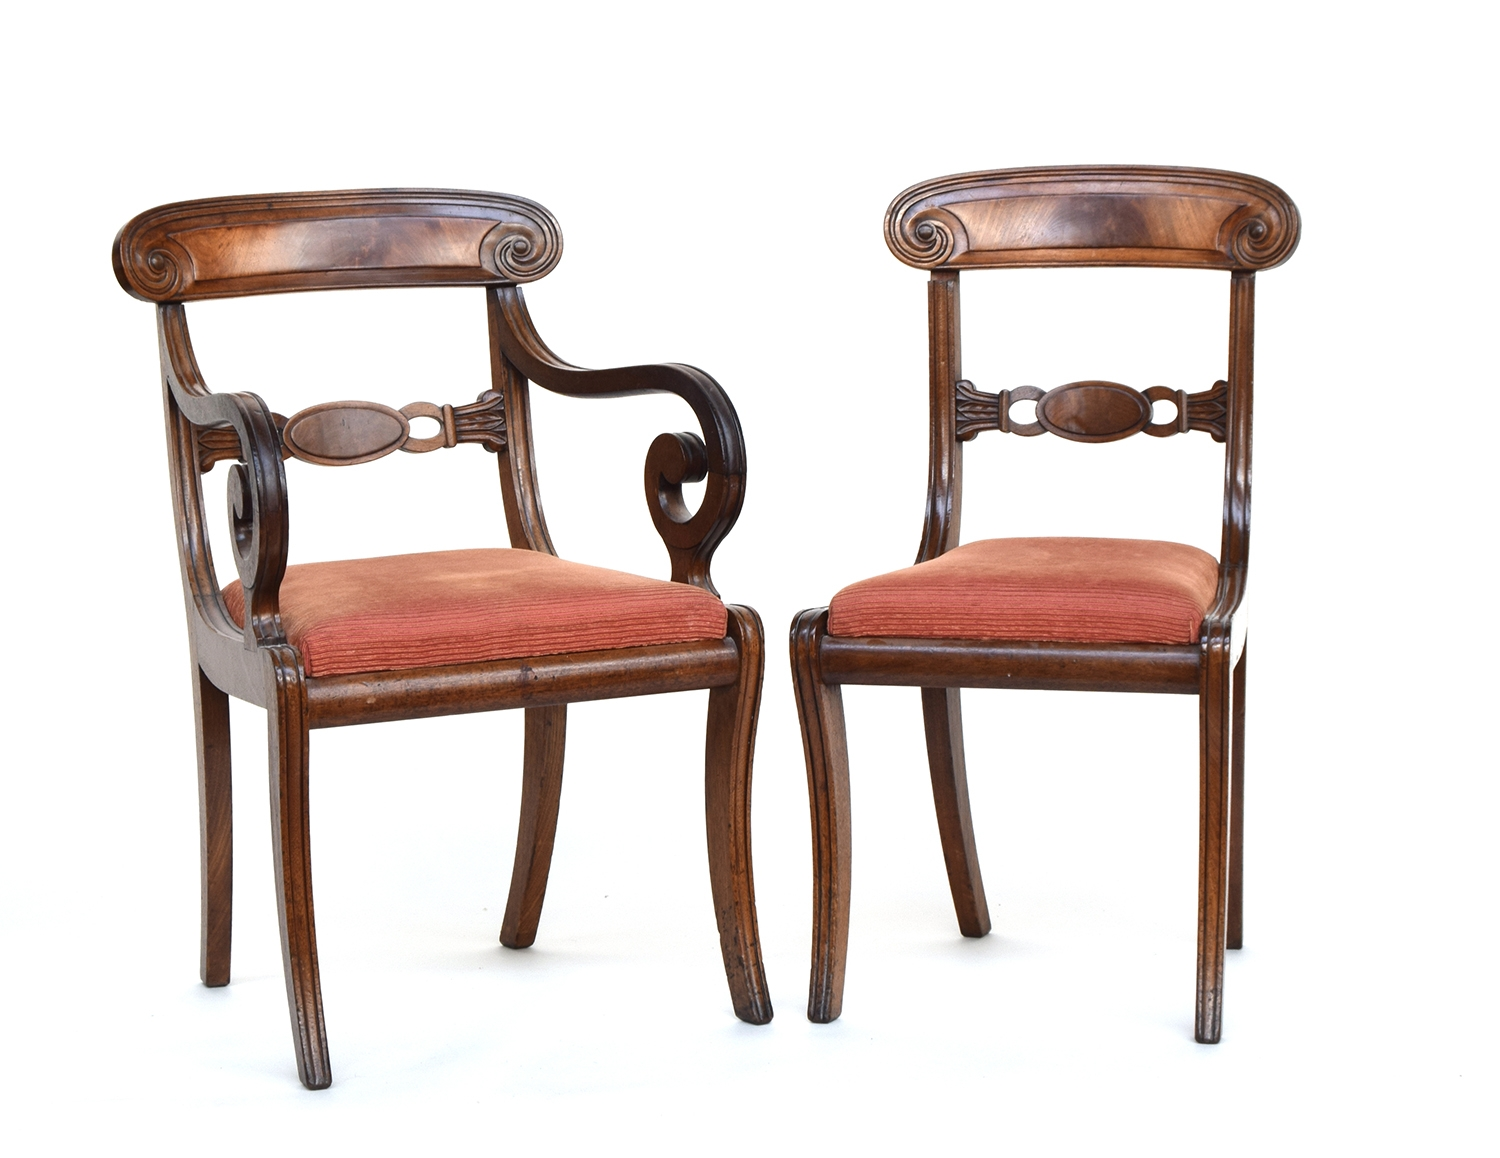 A set of seven Regency mahogany dining chairs with scroll carved rails, drop in seats, on sabre legs